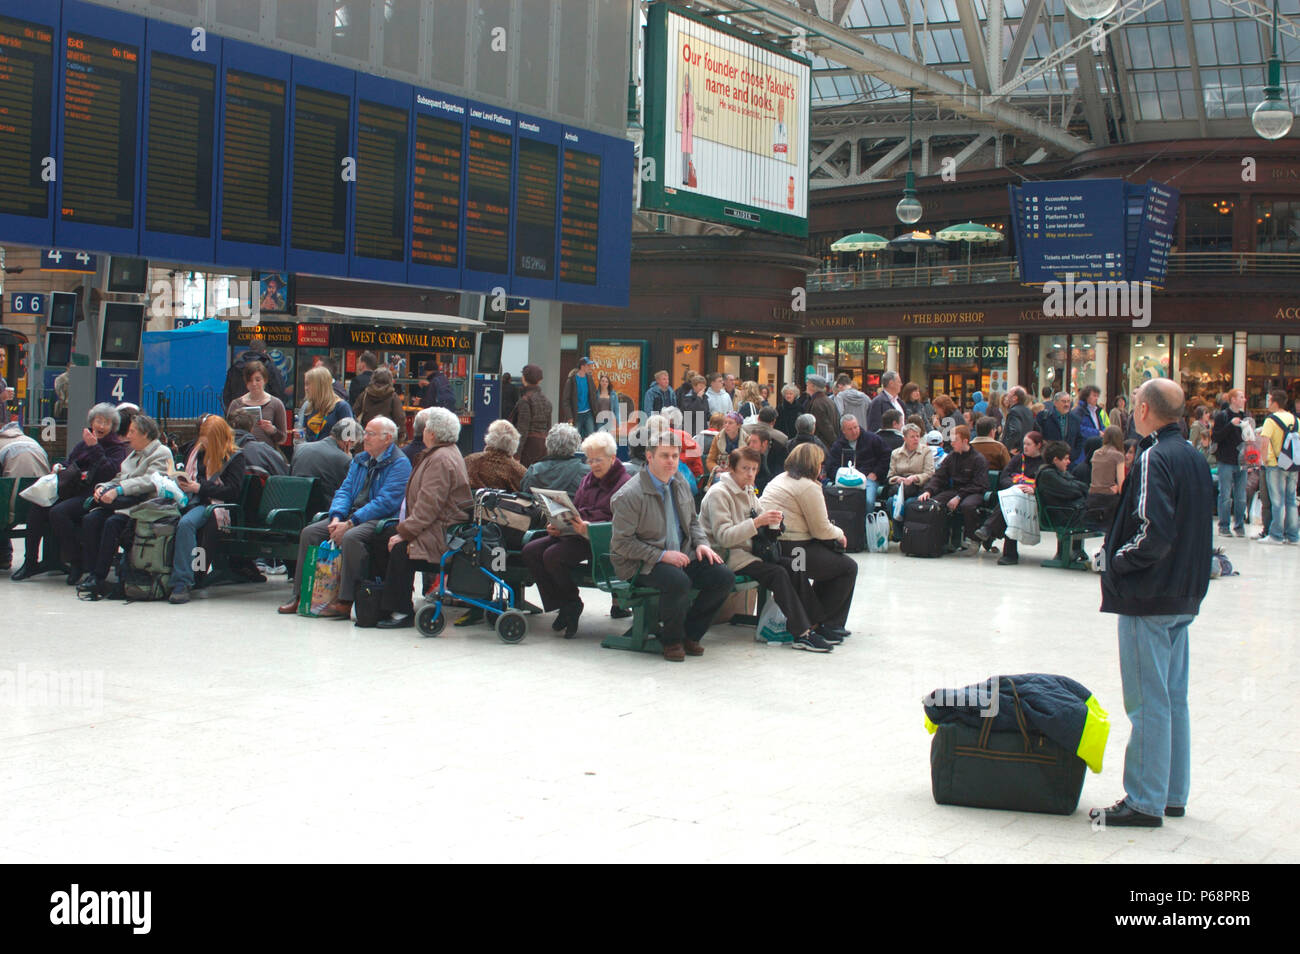 Travellers throng the concourse at Glasgow Central Station. April 2005. - Stock Image